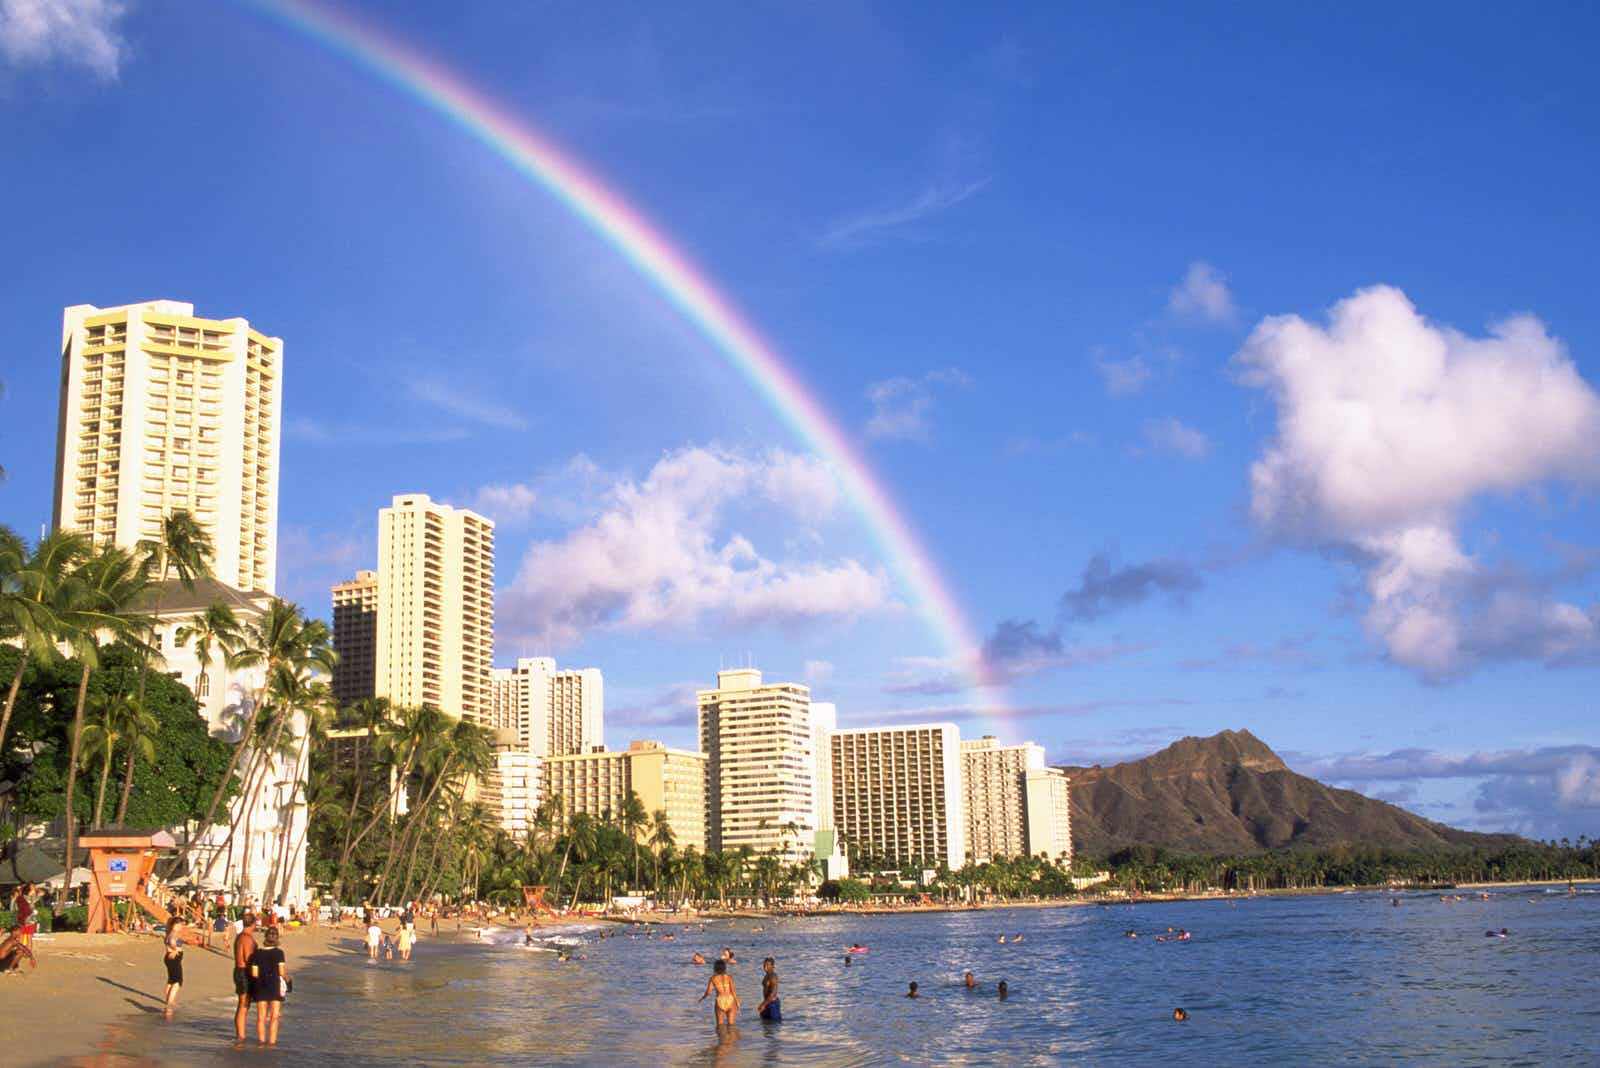 Indoor island fun: What to do on a rainy day on O'ahu